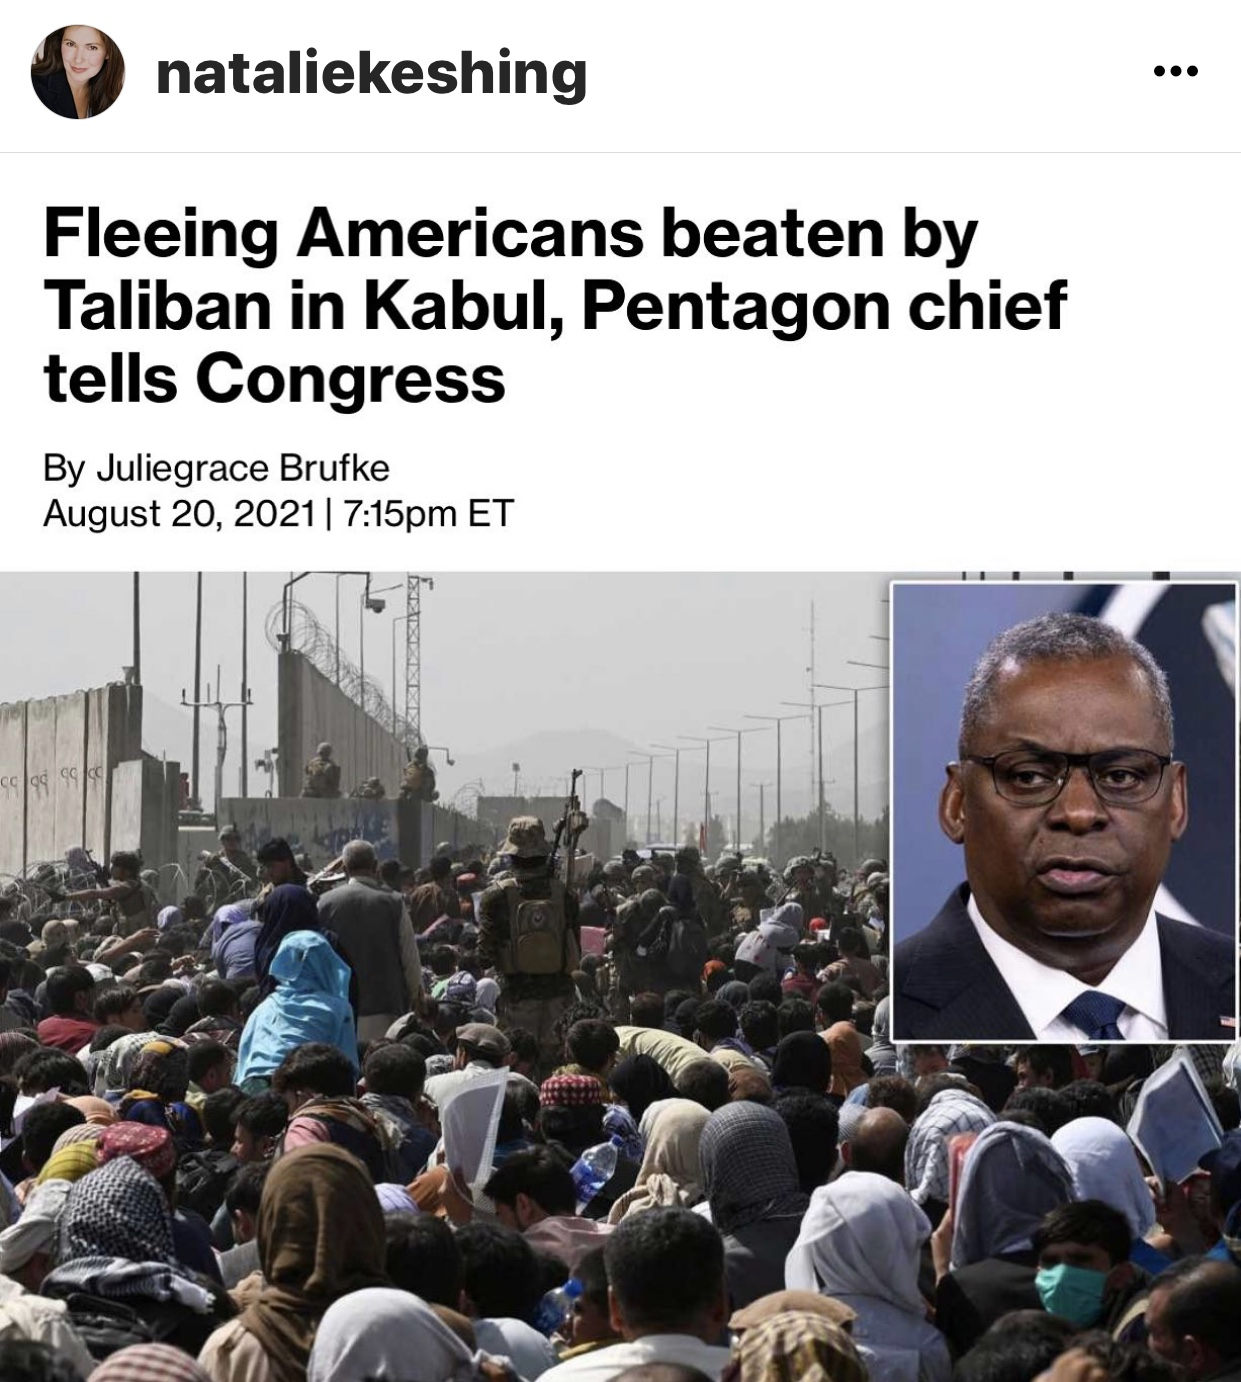 Incompetent and dangerous Biden administration allowed Taliban to beat Americans in Afghanistan